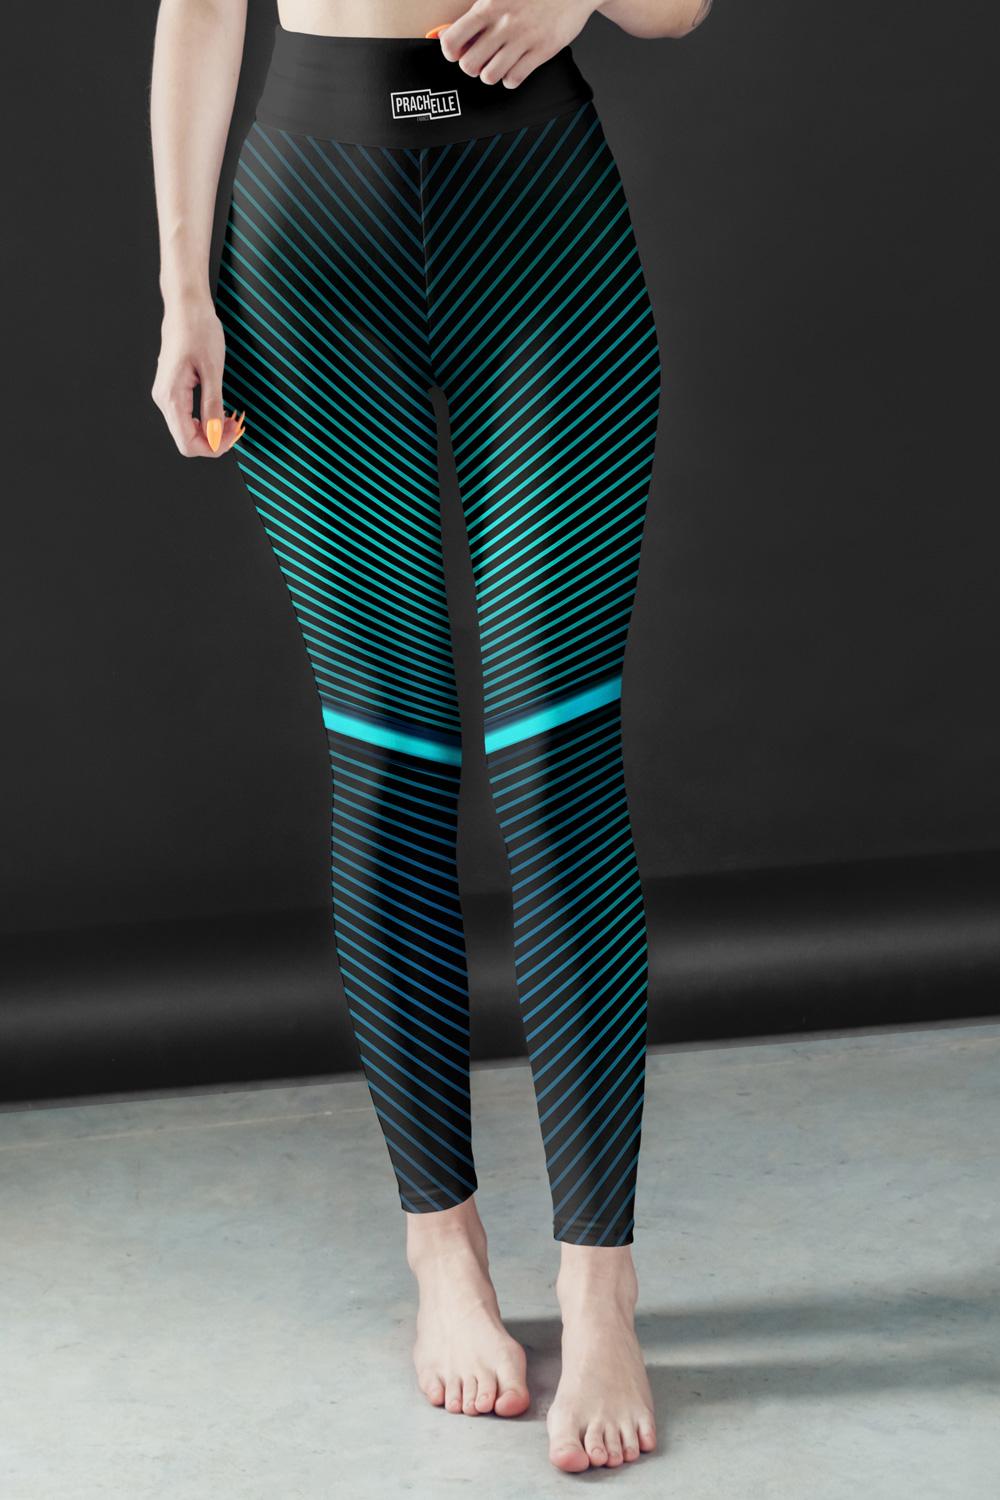 Blue Lines | Black Leggings